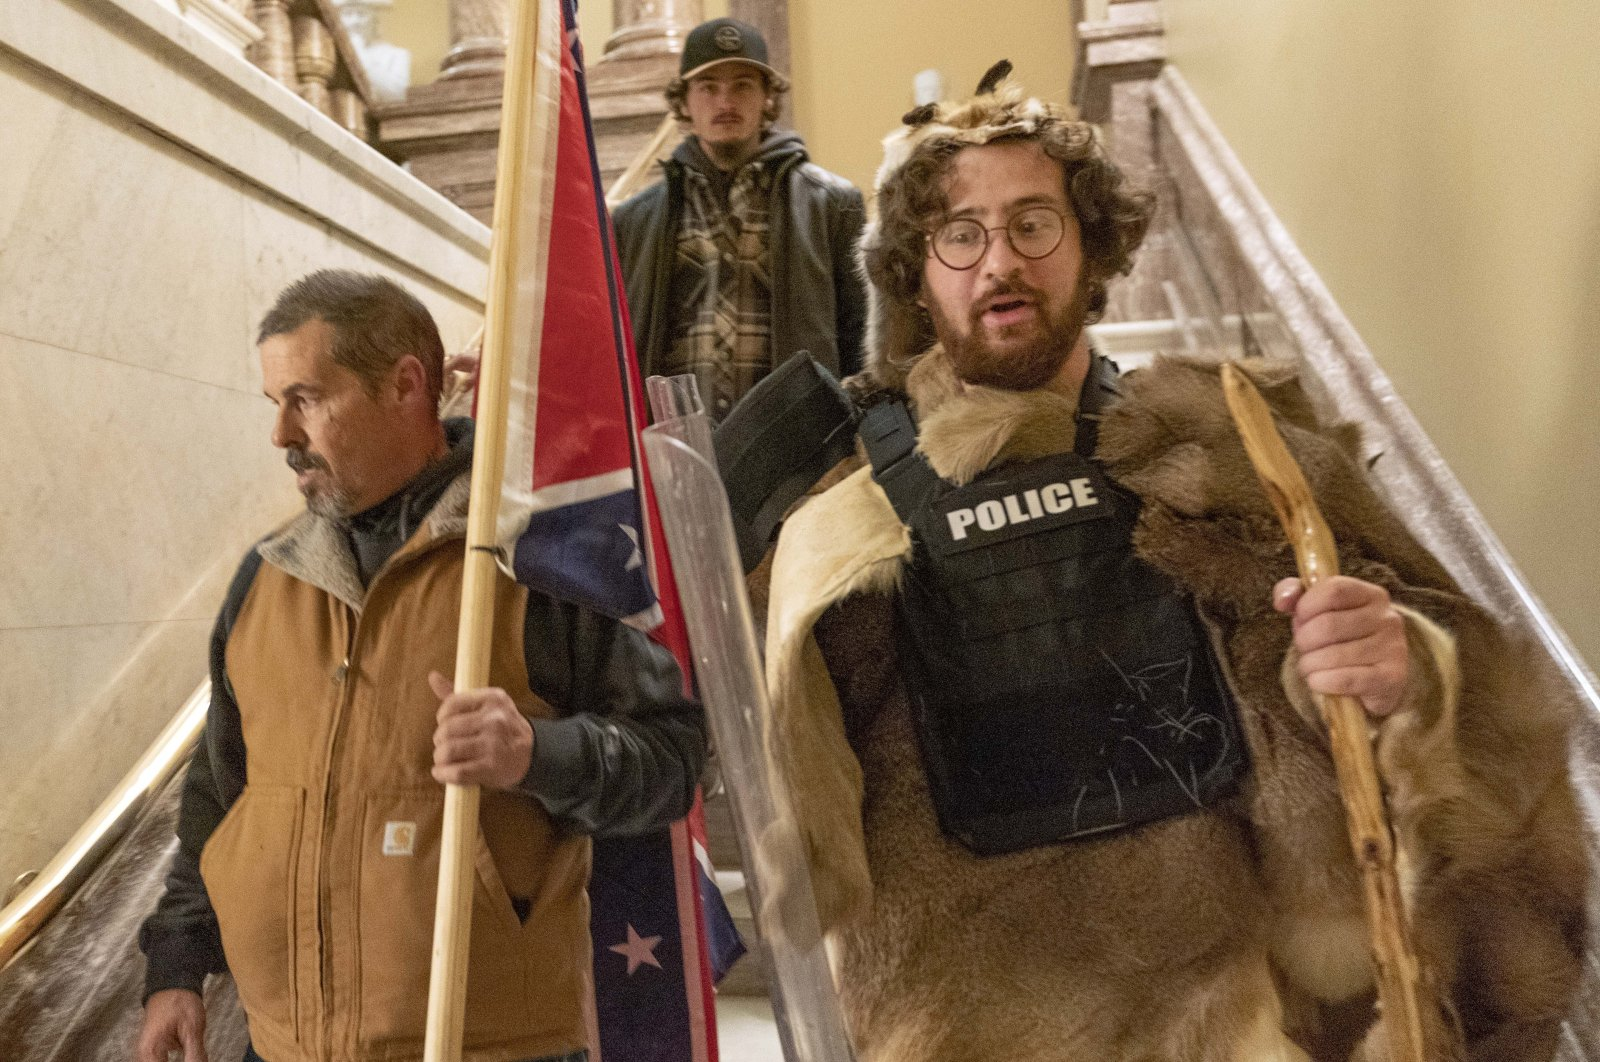 In this file photo, supporters of President Donald Trump, including Aaron Mostofsky (R), who is identified in his arrest warrant, walk down the stairs outside the Senate Chamber in the U.S. Capitol, in Washington D.C. on Jan. 6, 2021. (AP Photo)